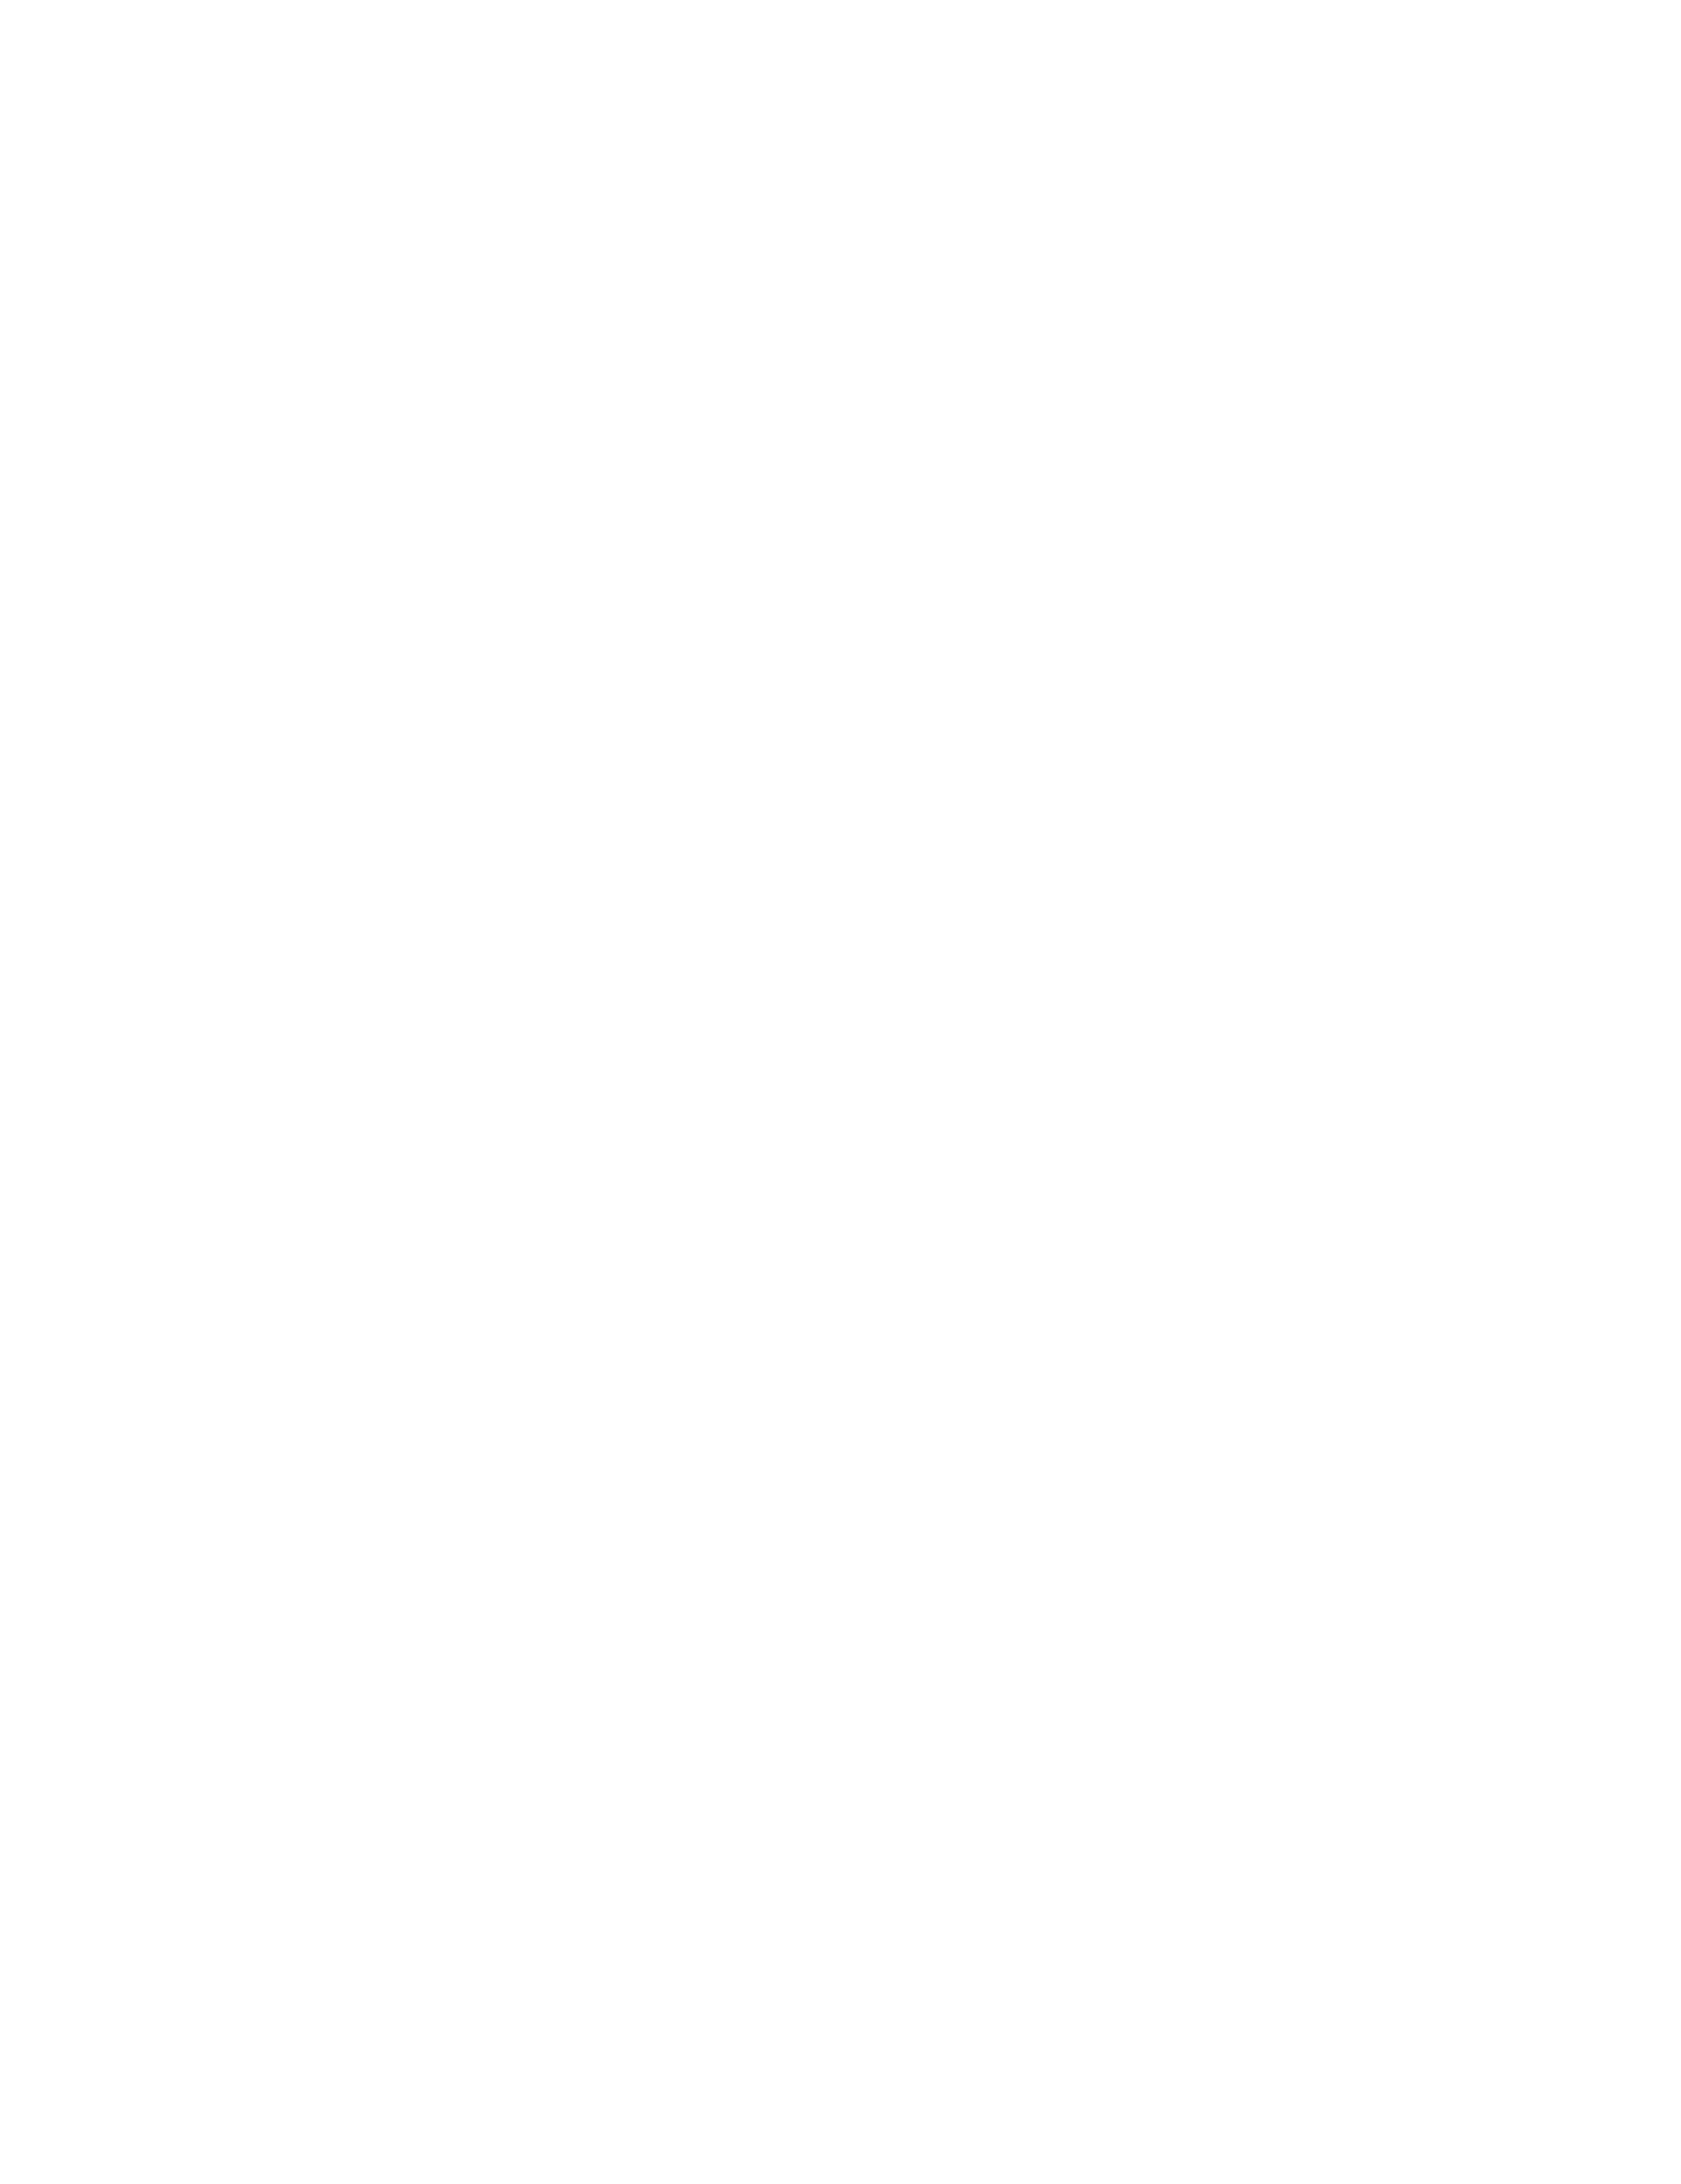 Tune Up Fitness Help Center